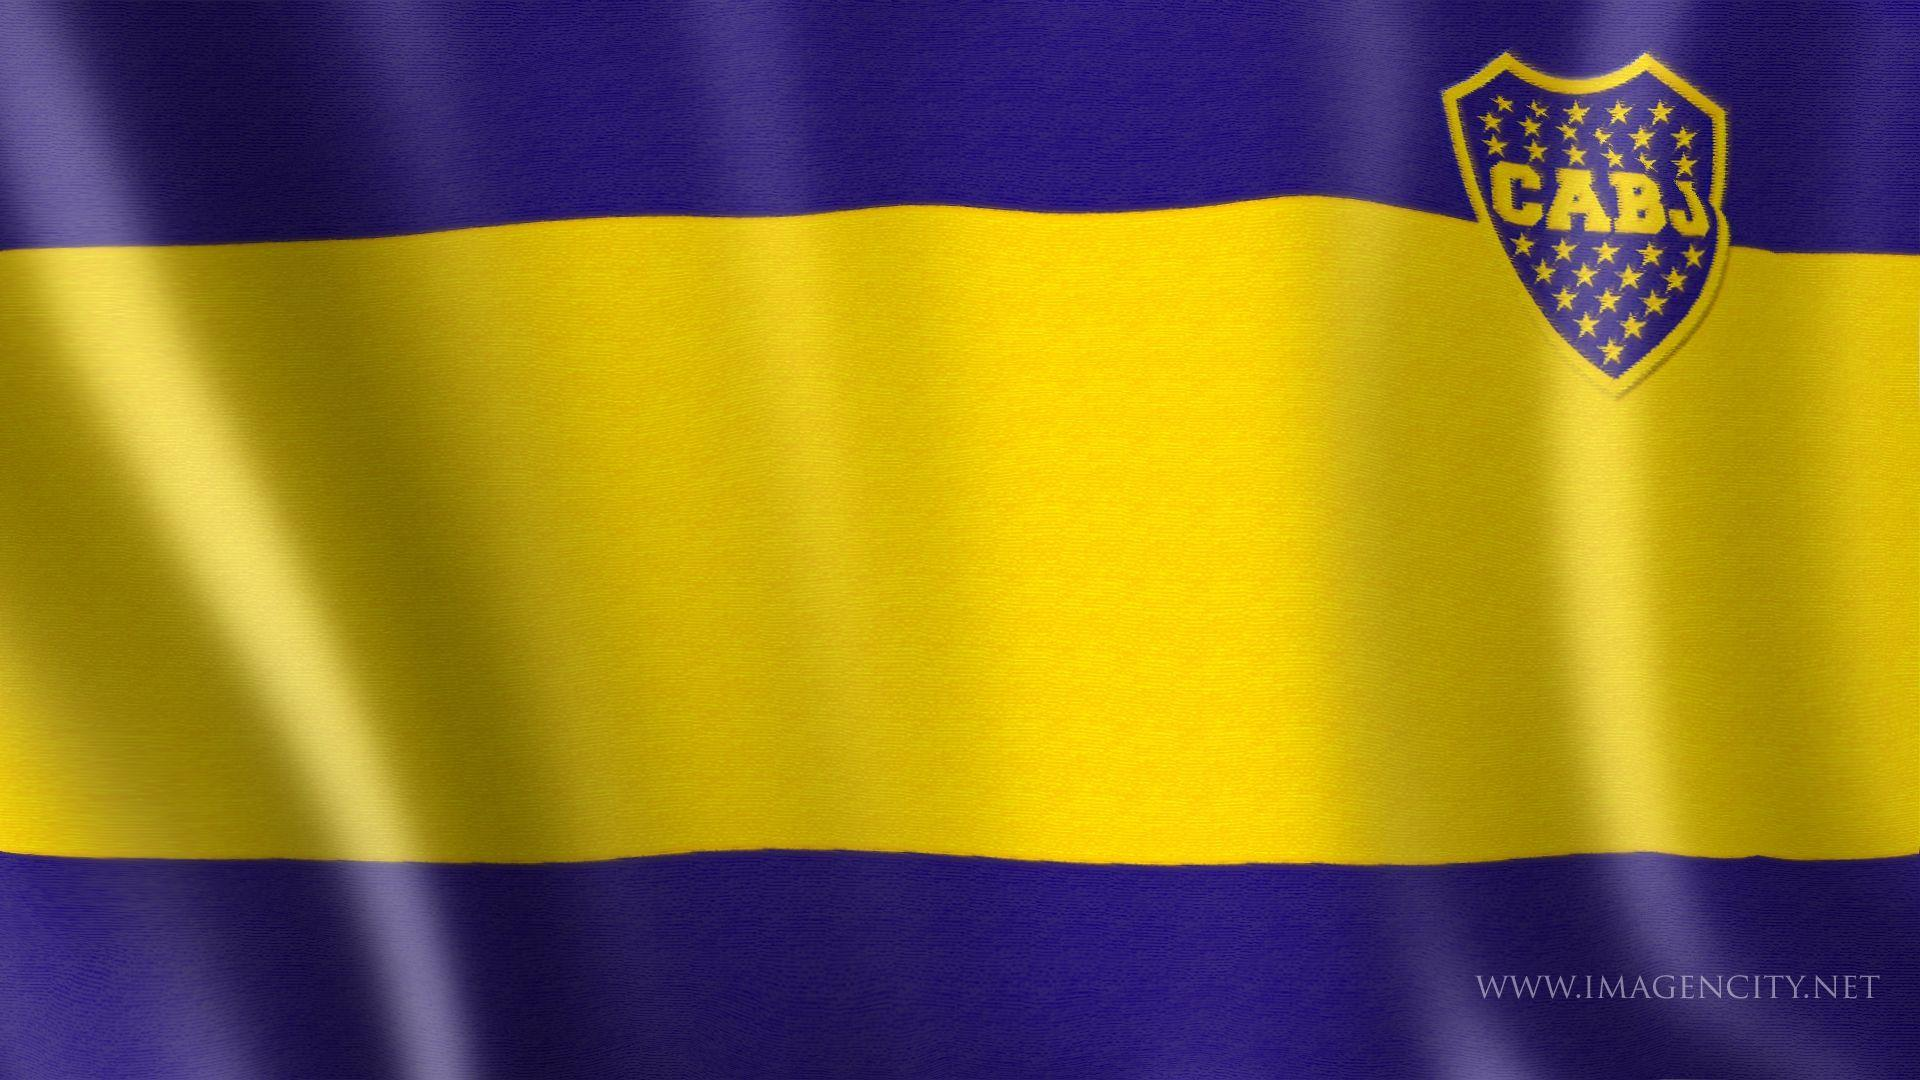 Boca Juniors Fondos De F Tbol 1920x1080px #0 #98528 HD Wallpaper ...